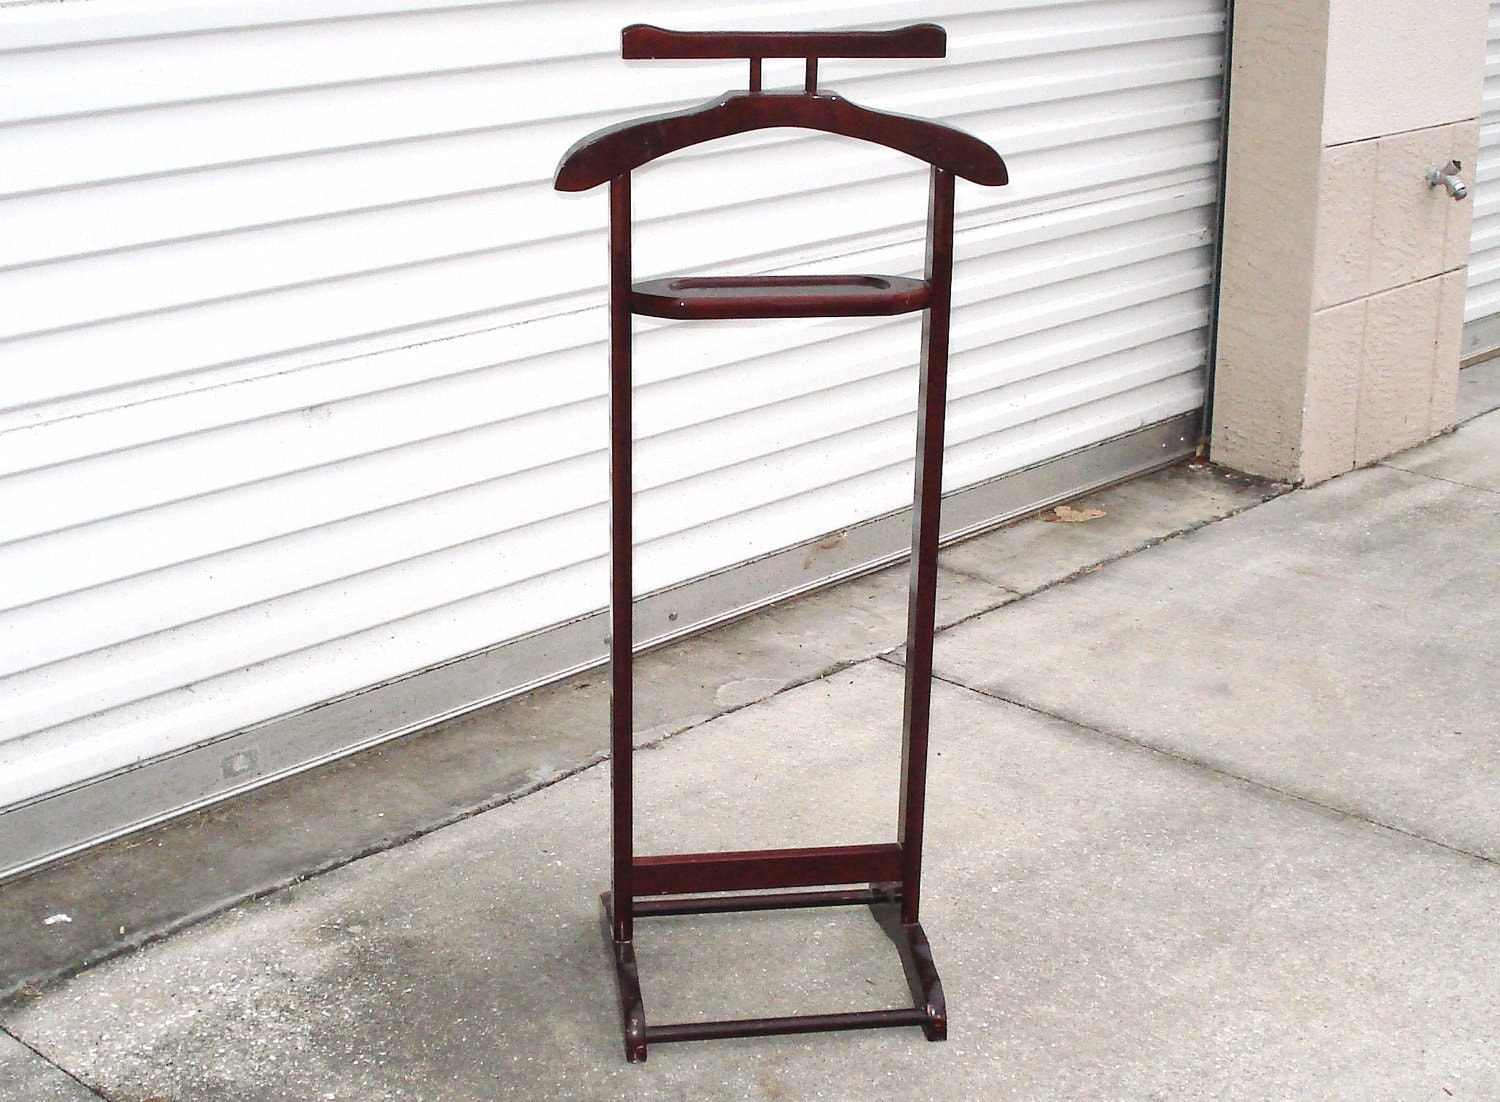 Very Impressive portraiture of Vintage Wooden Clothes Valet Stand Suit Rack Cloth by npebaysale with #3C2222 color and 1500x1102 pixels